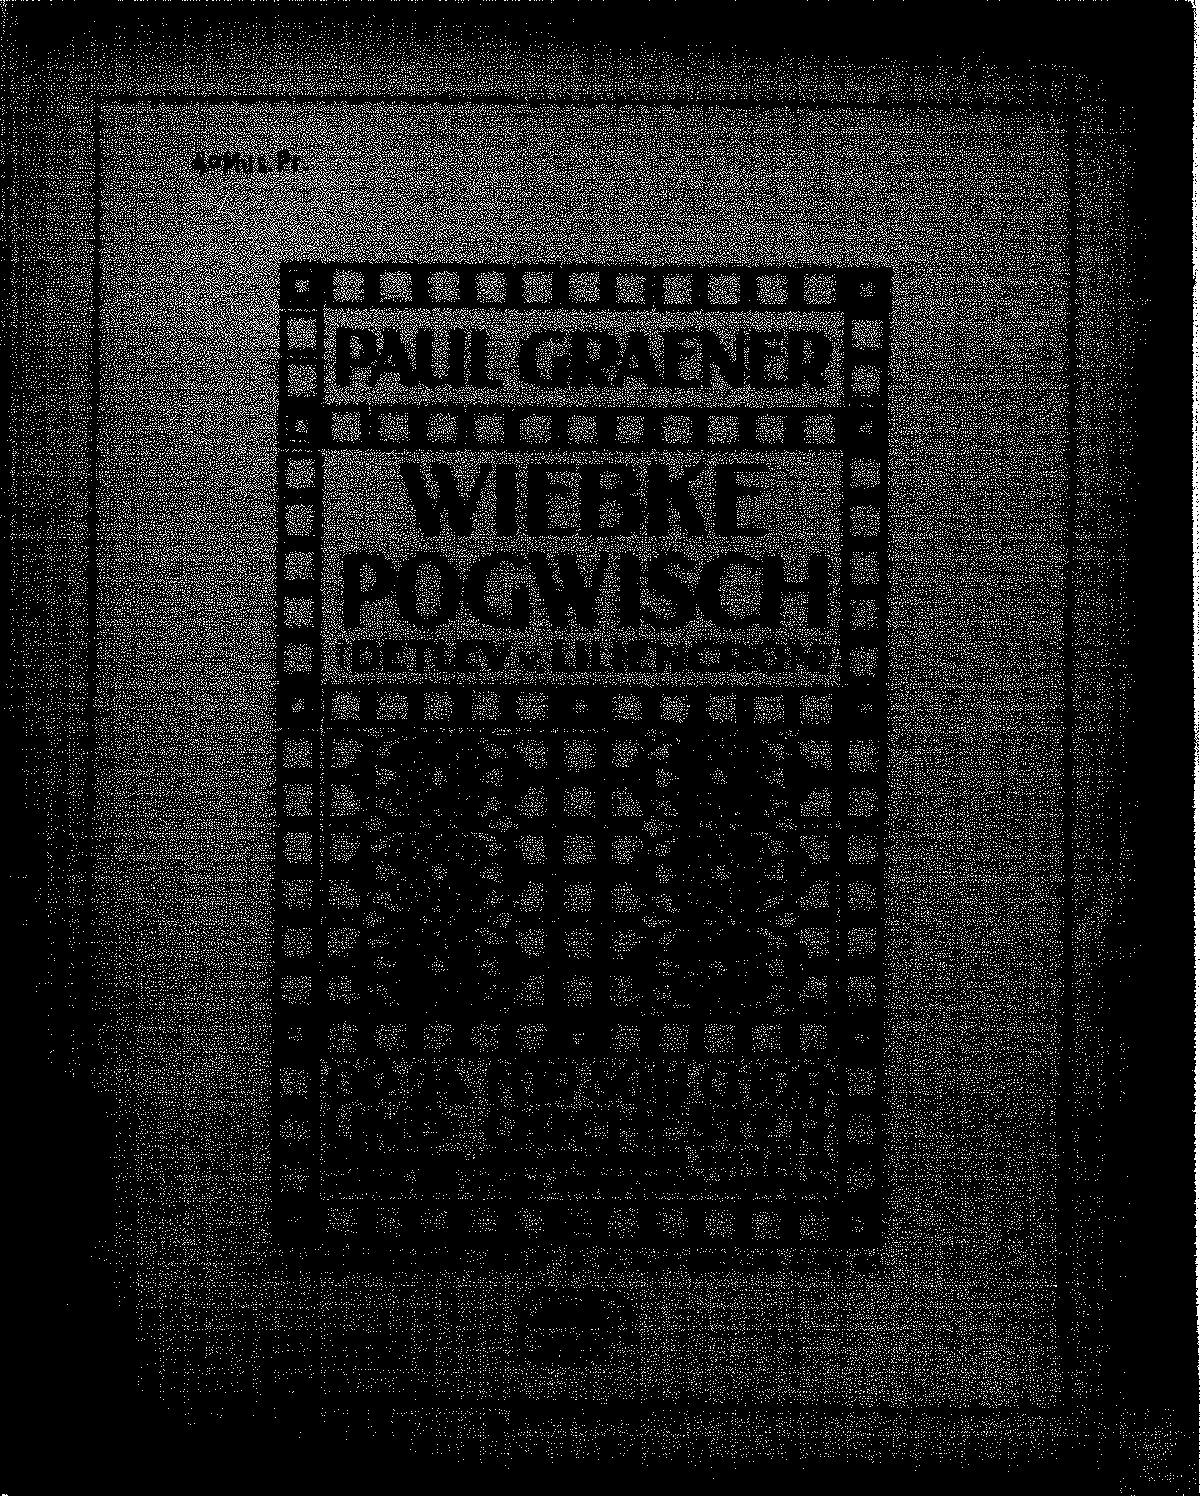 PMLP428443-Graener Opus 24 score for upload.pdf